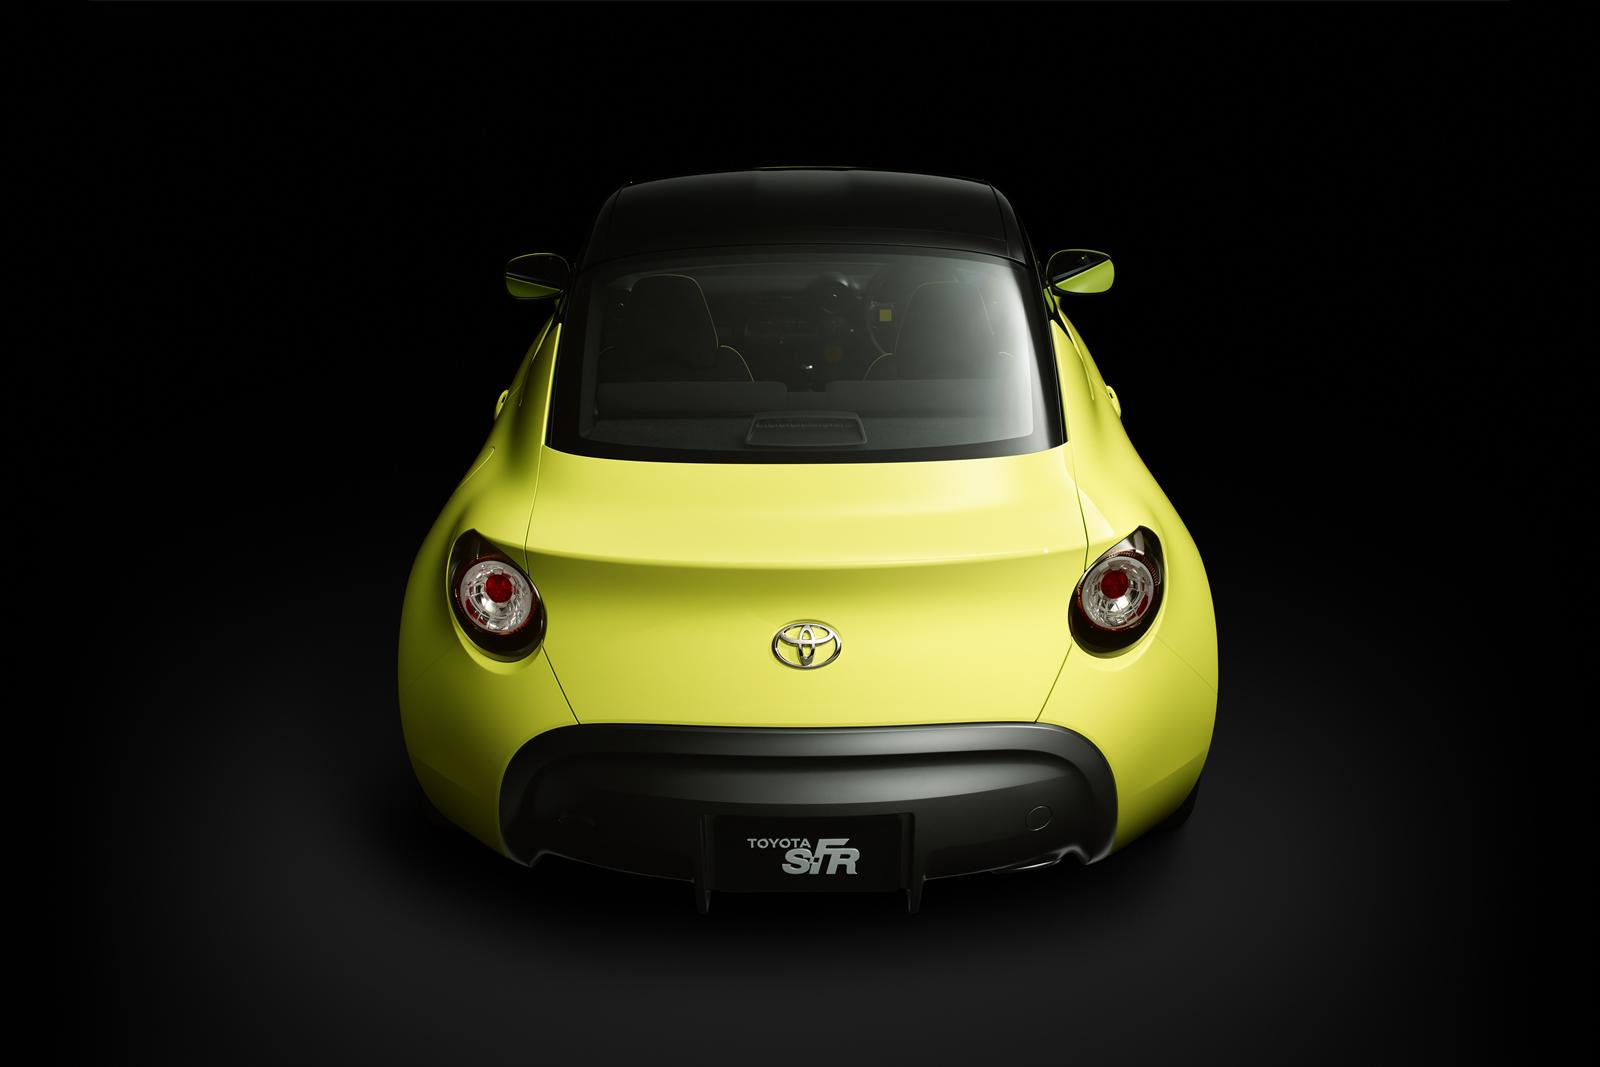 Toyota S-FR concept 20